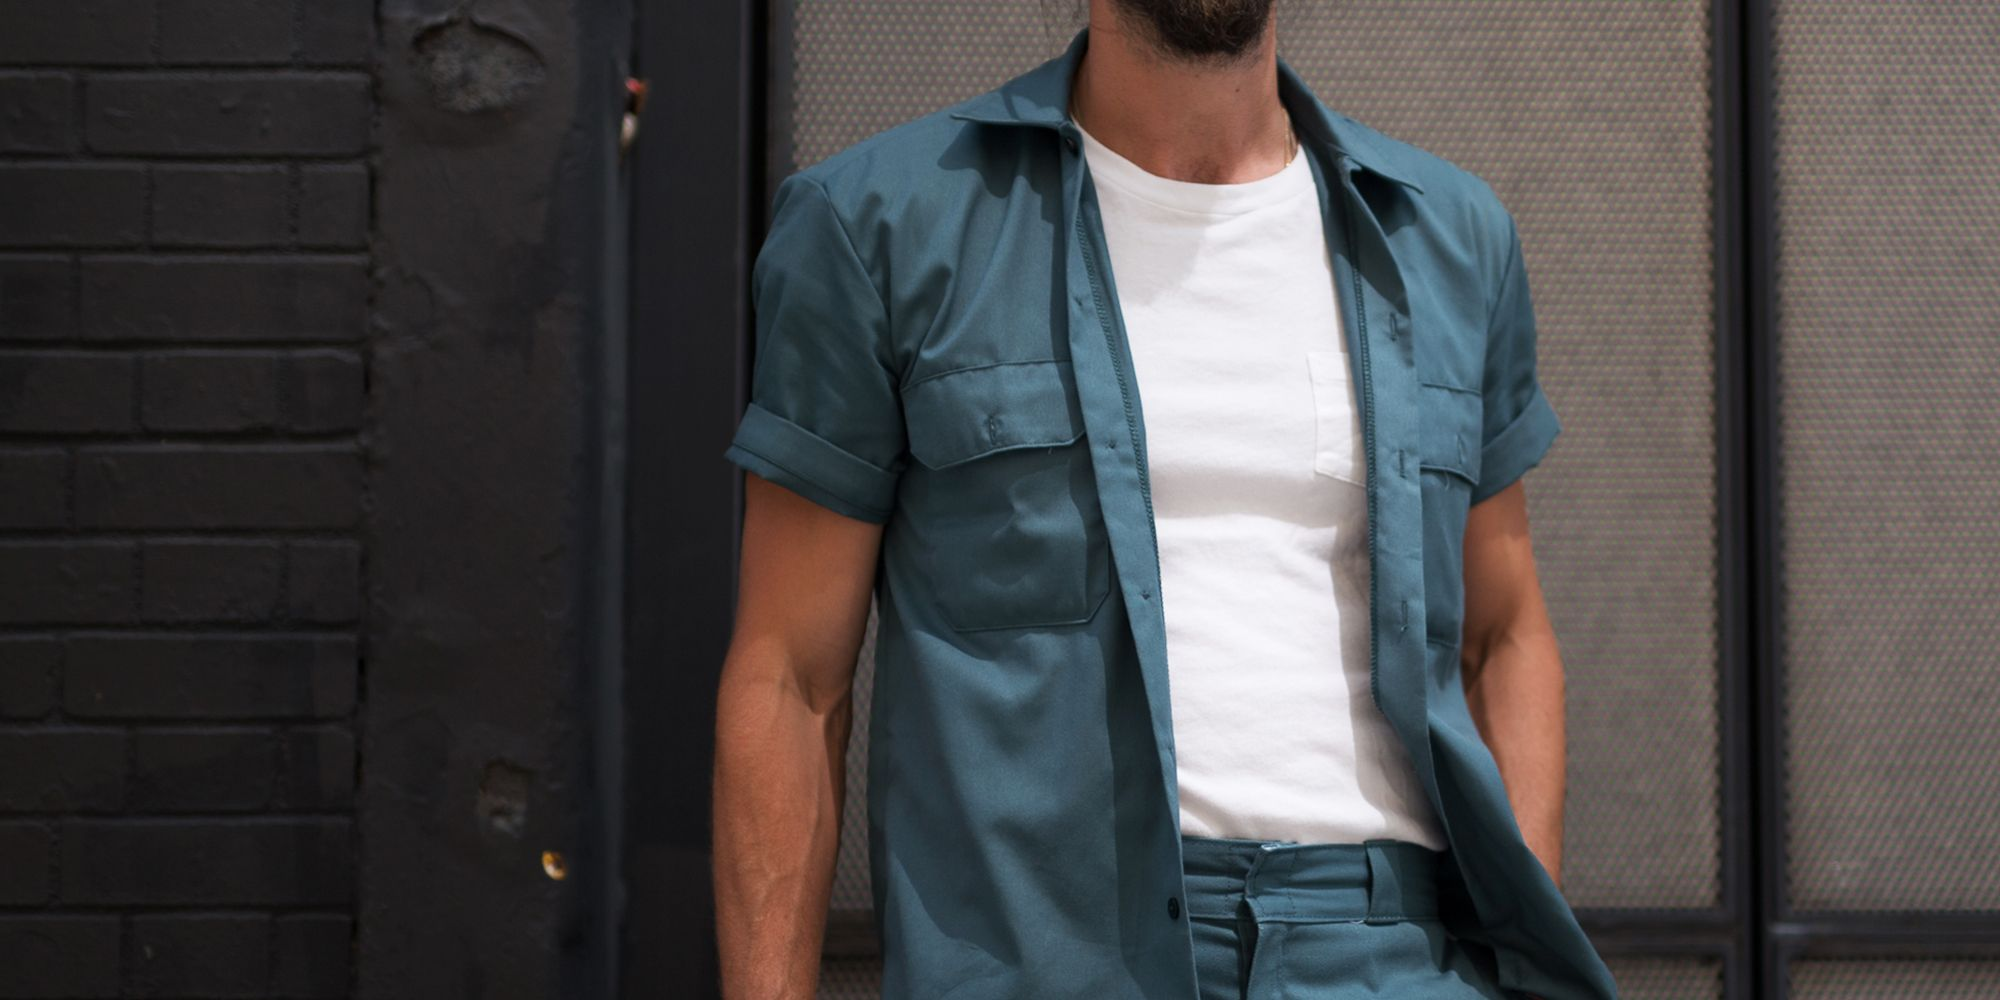 A Good Undershirt Is the Secret to a Comfortable, Stylish Summer